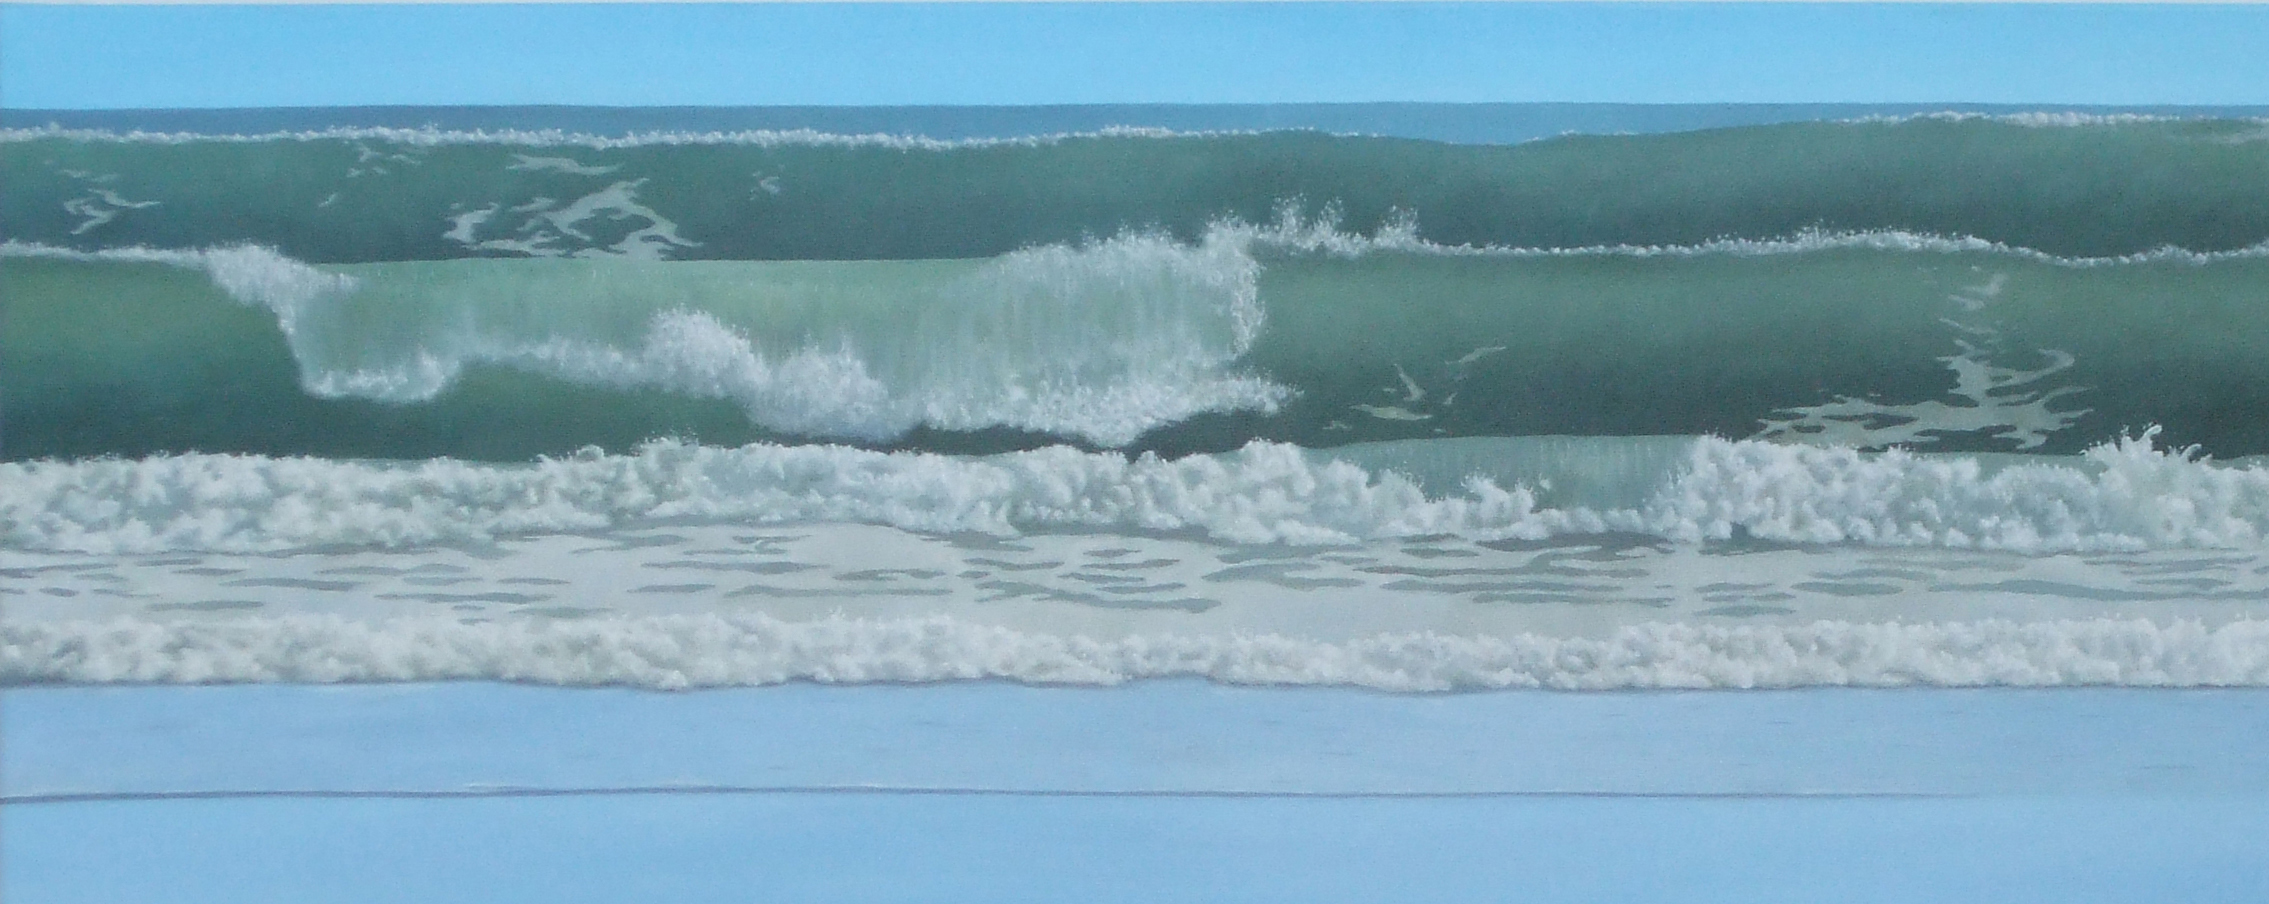 Offshore Waves